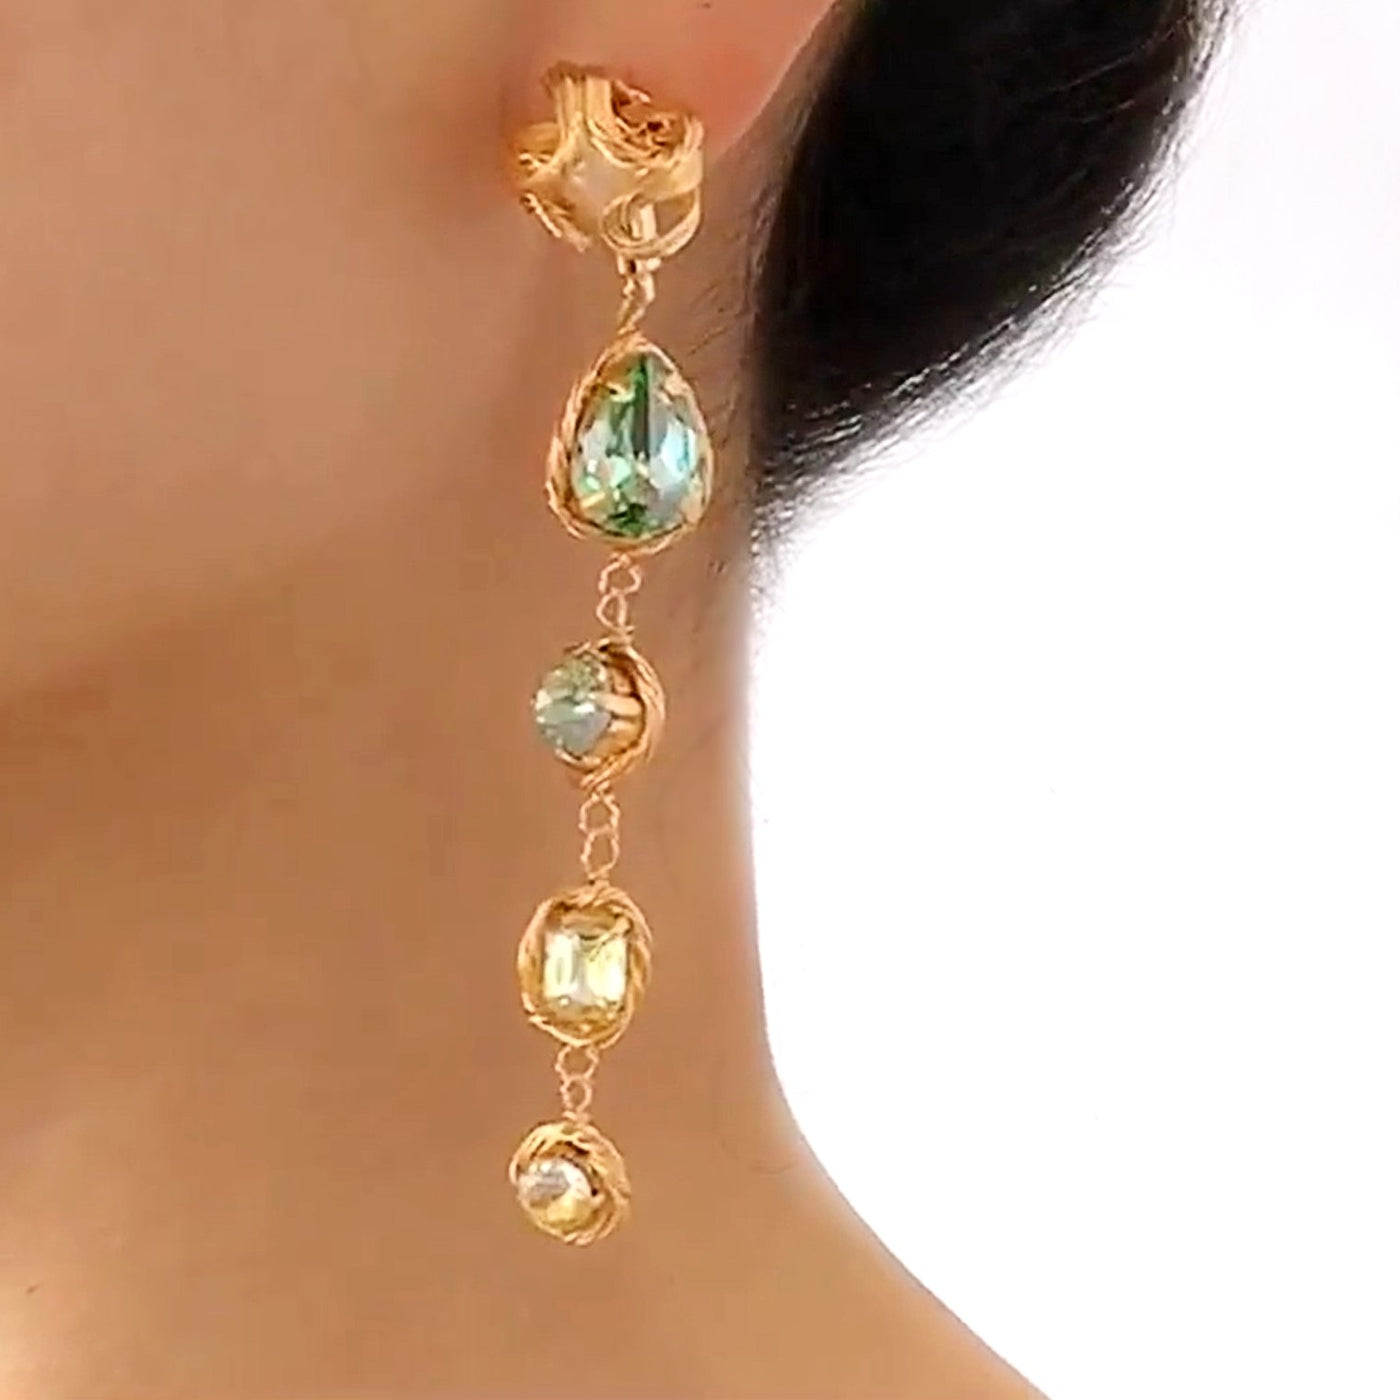 semi-precious stone drop earrings featuring pearl flower motif displayed on model